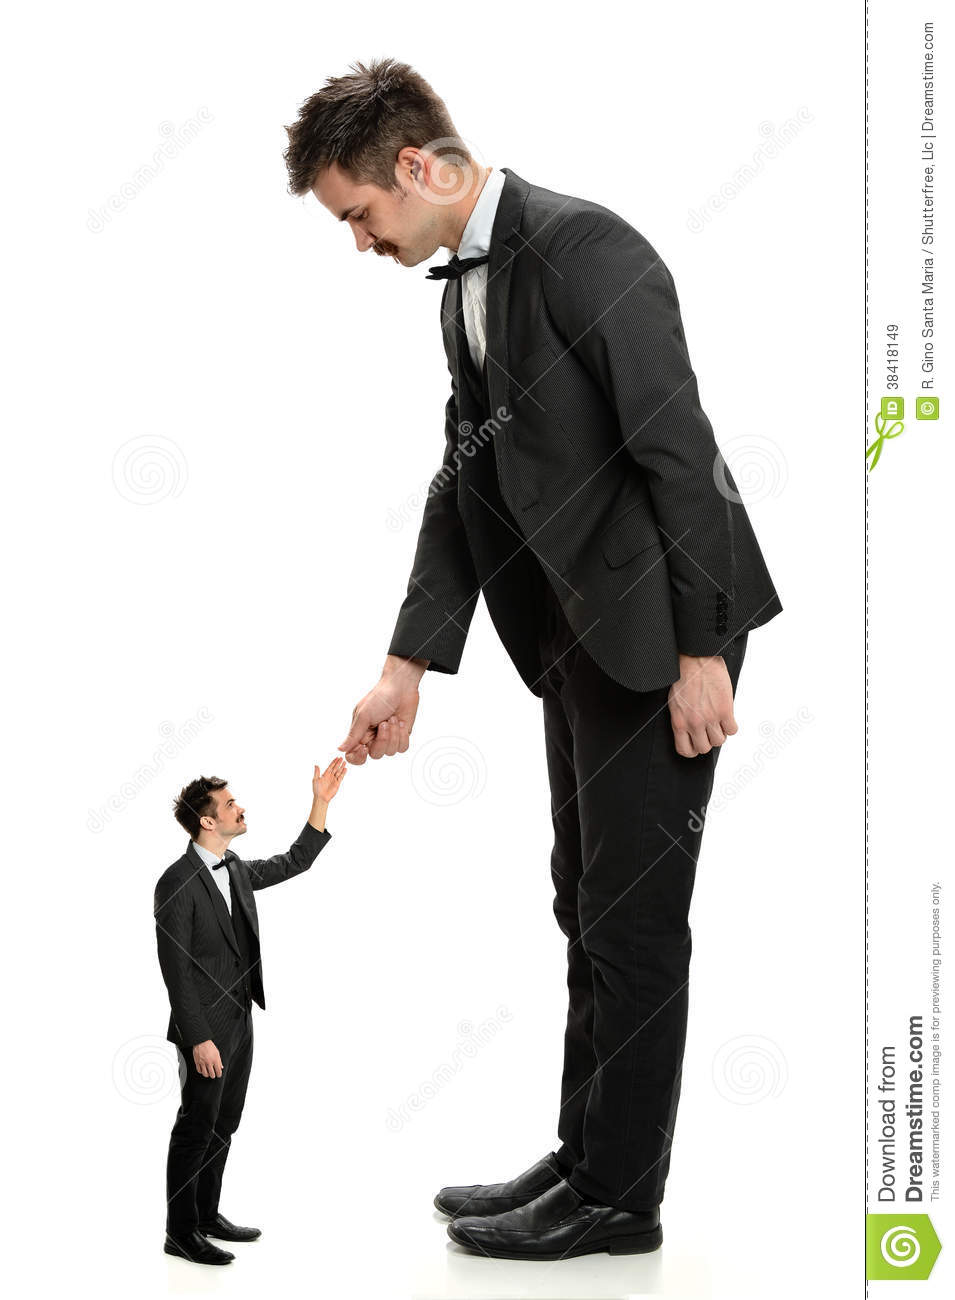 Giant businessman shaking hands with small businessman isolated over ...